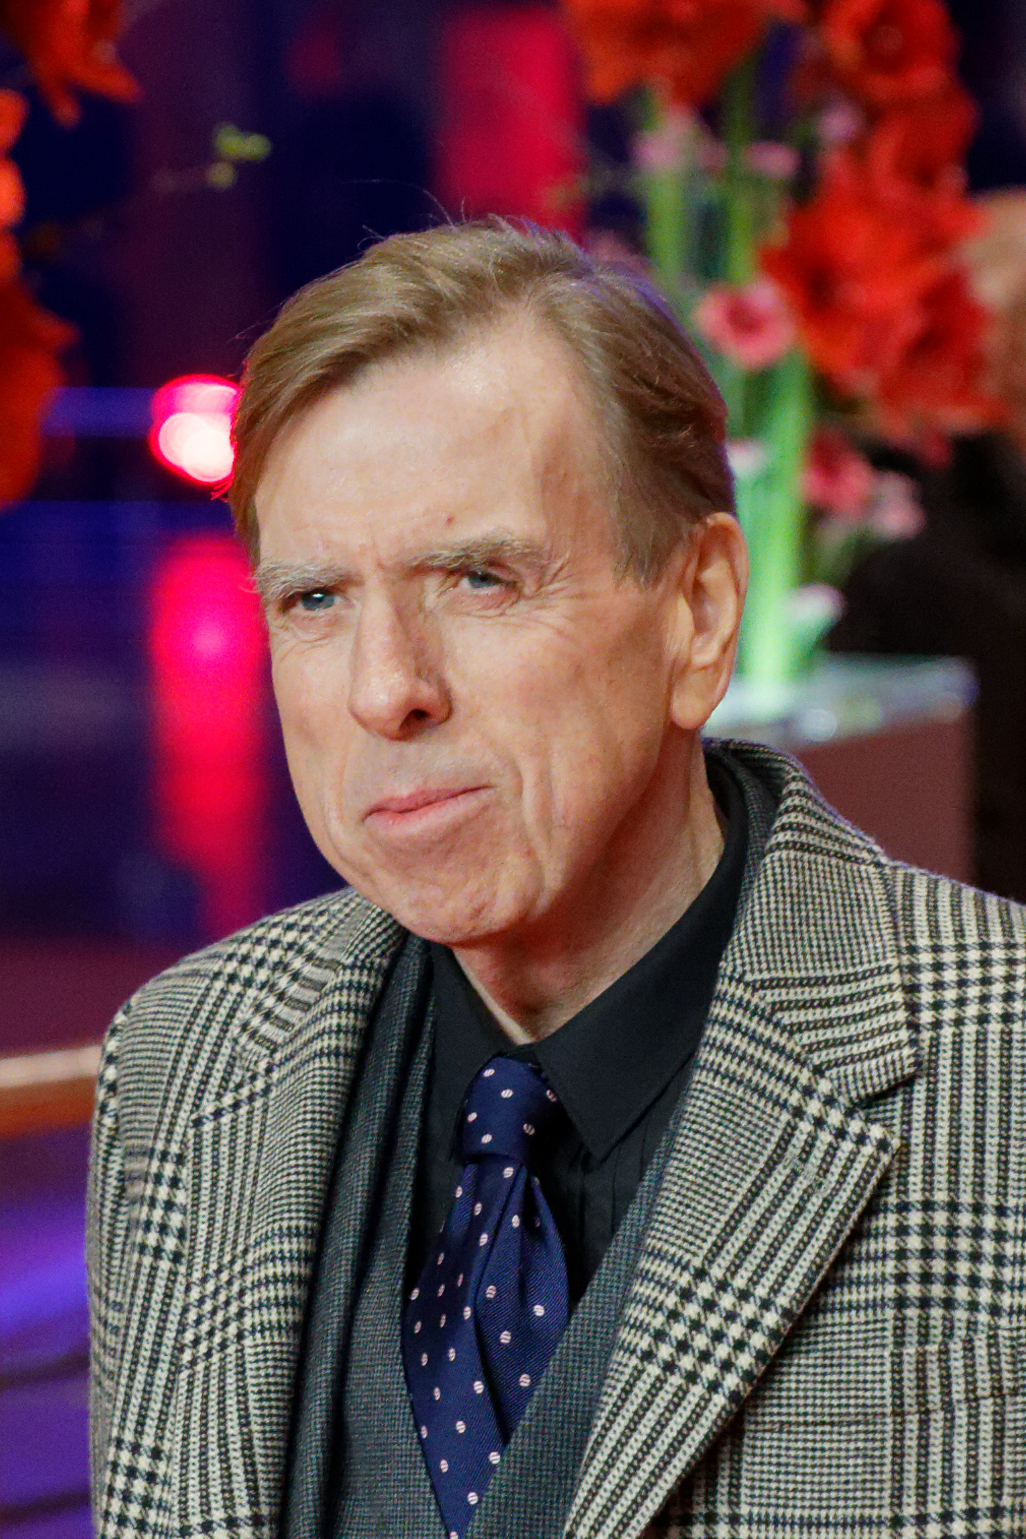 The 63-year old son of father Joseph L. Spall and mother Sylvia R. Spall Timothy Spall in 2021 photo. Timothy Spall earned a  million dollar salary - leaving the net worth at 4 million in 2021